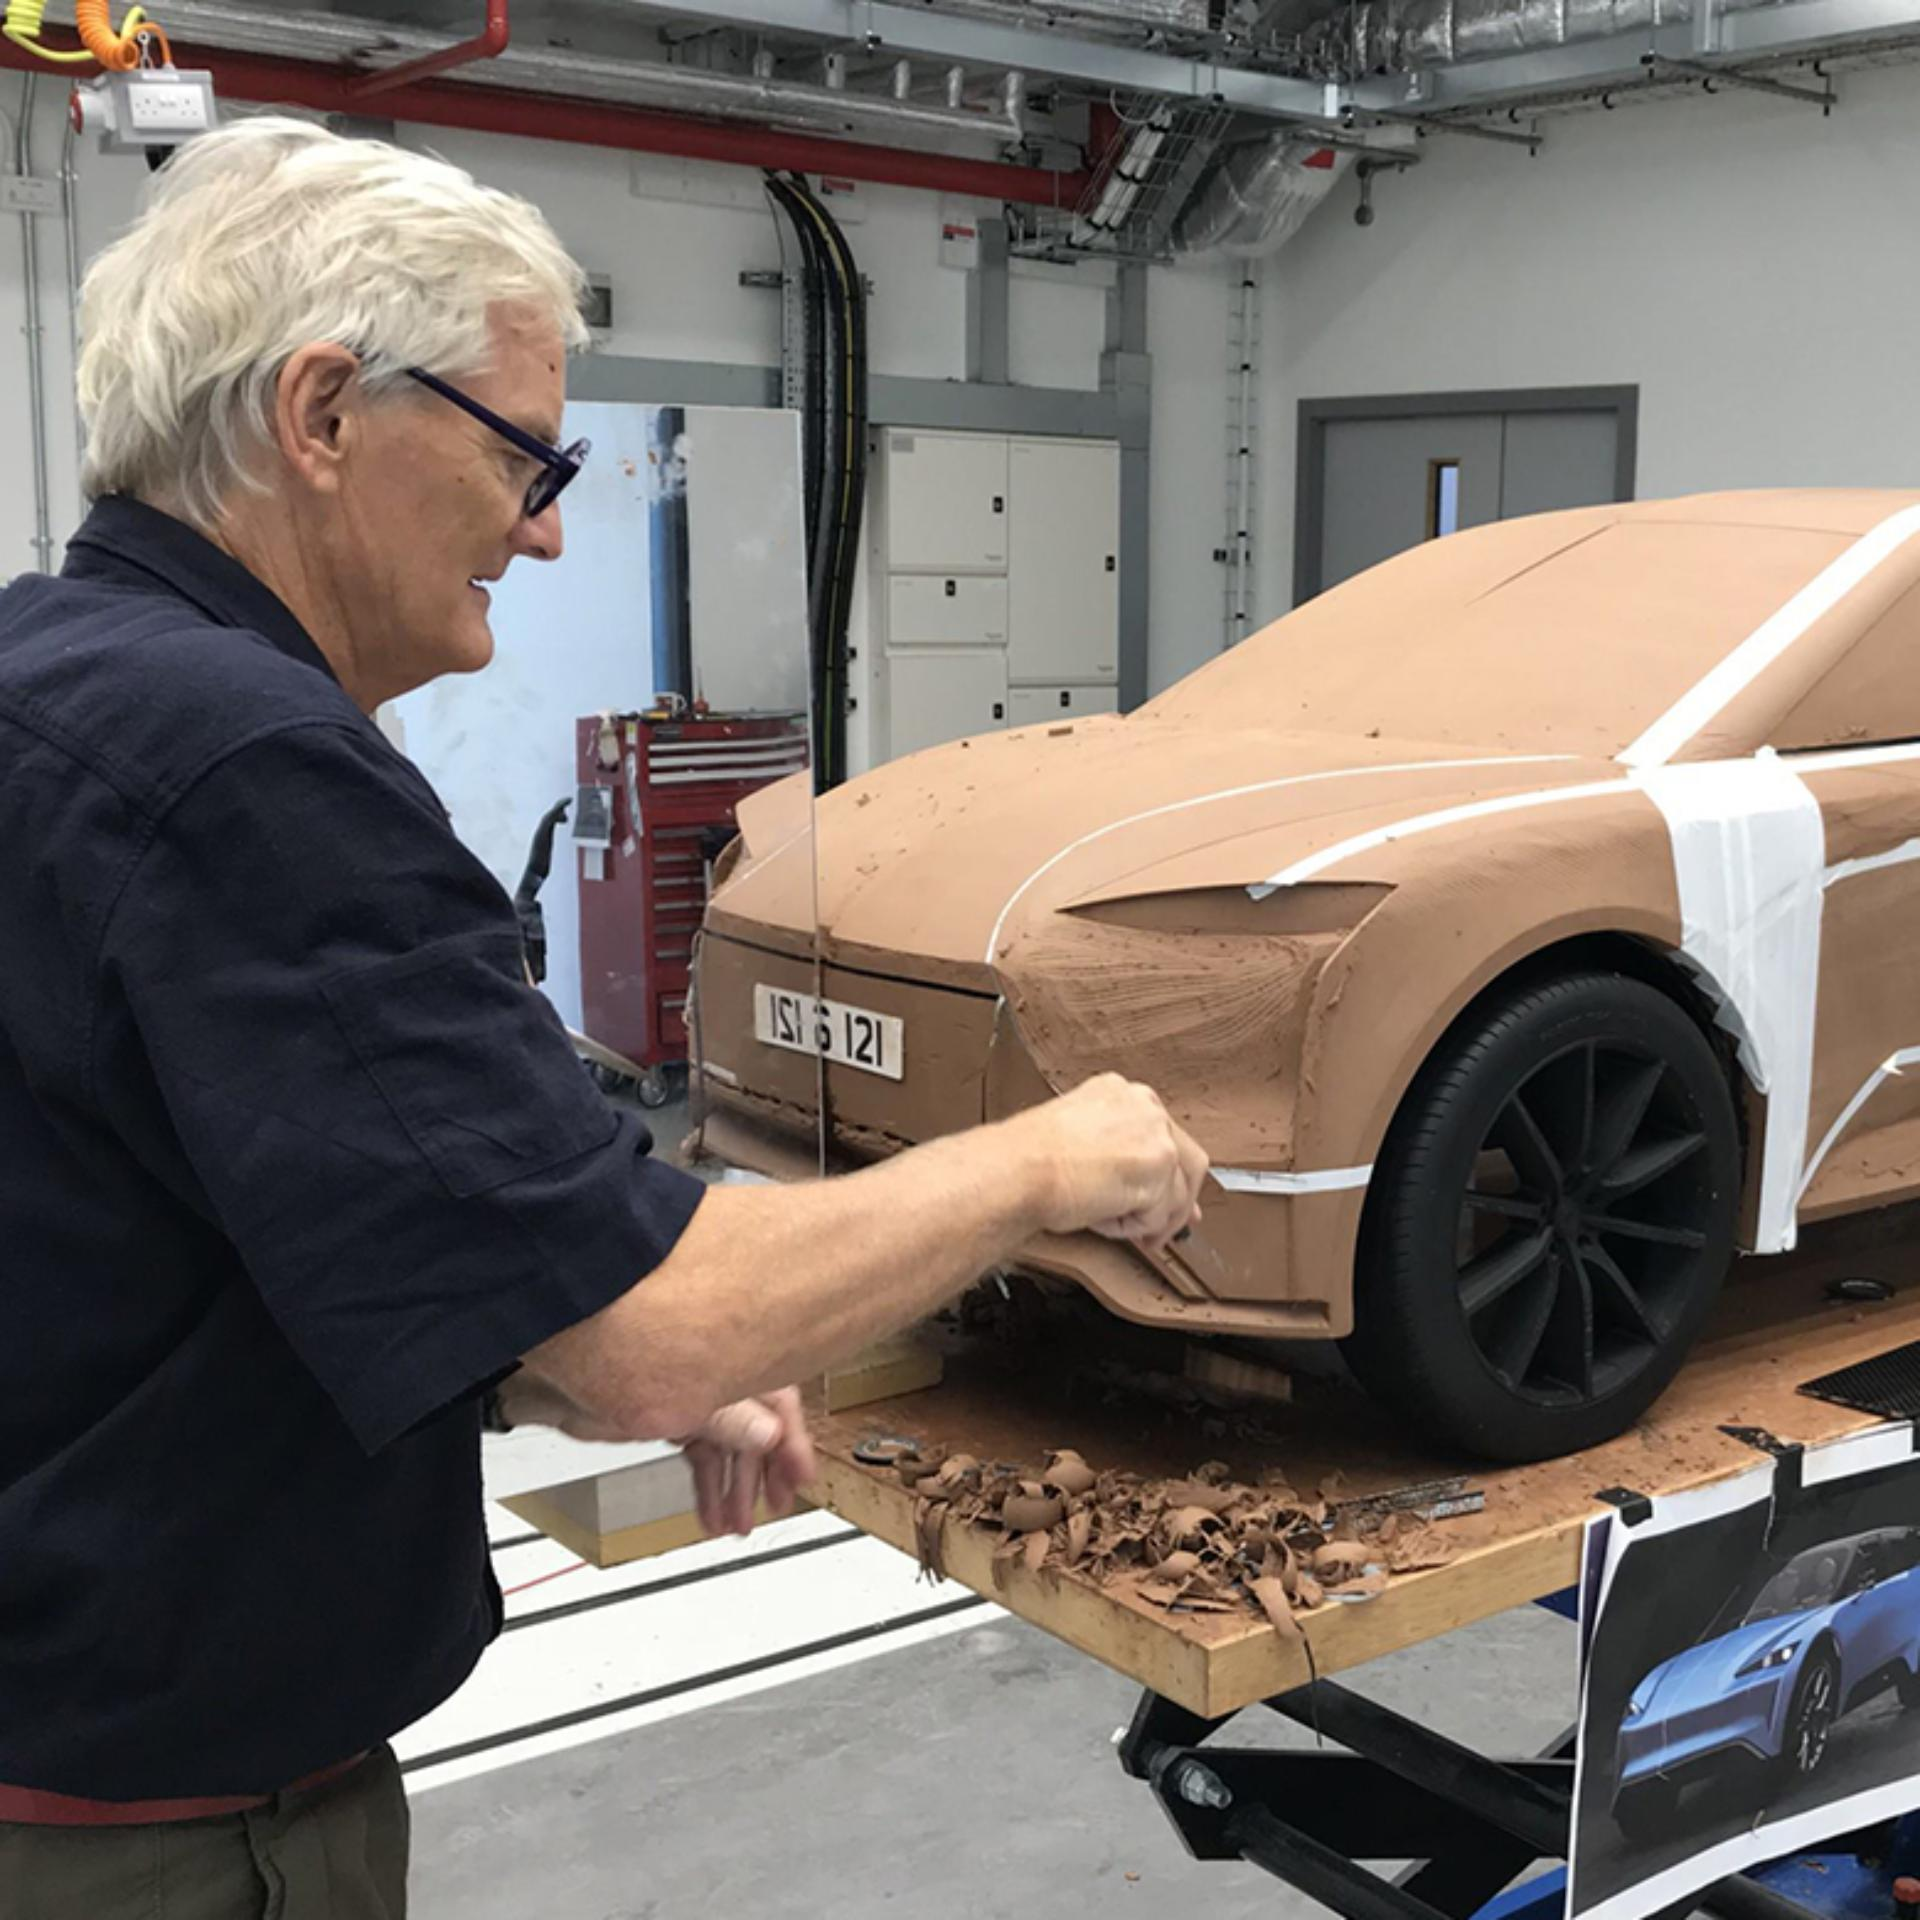 James Dyson modelling the front of the car out of clay